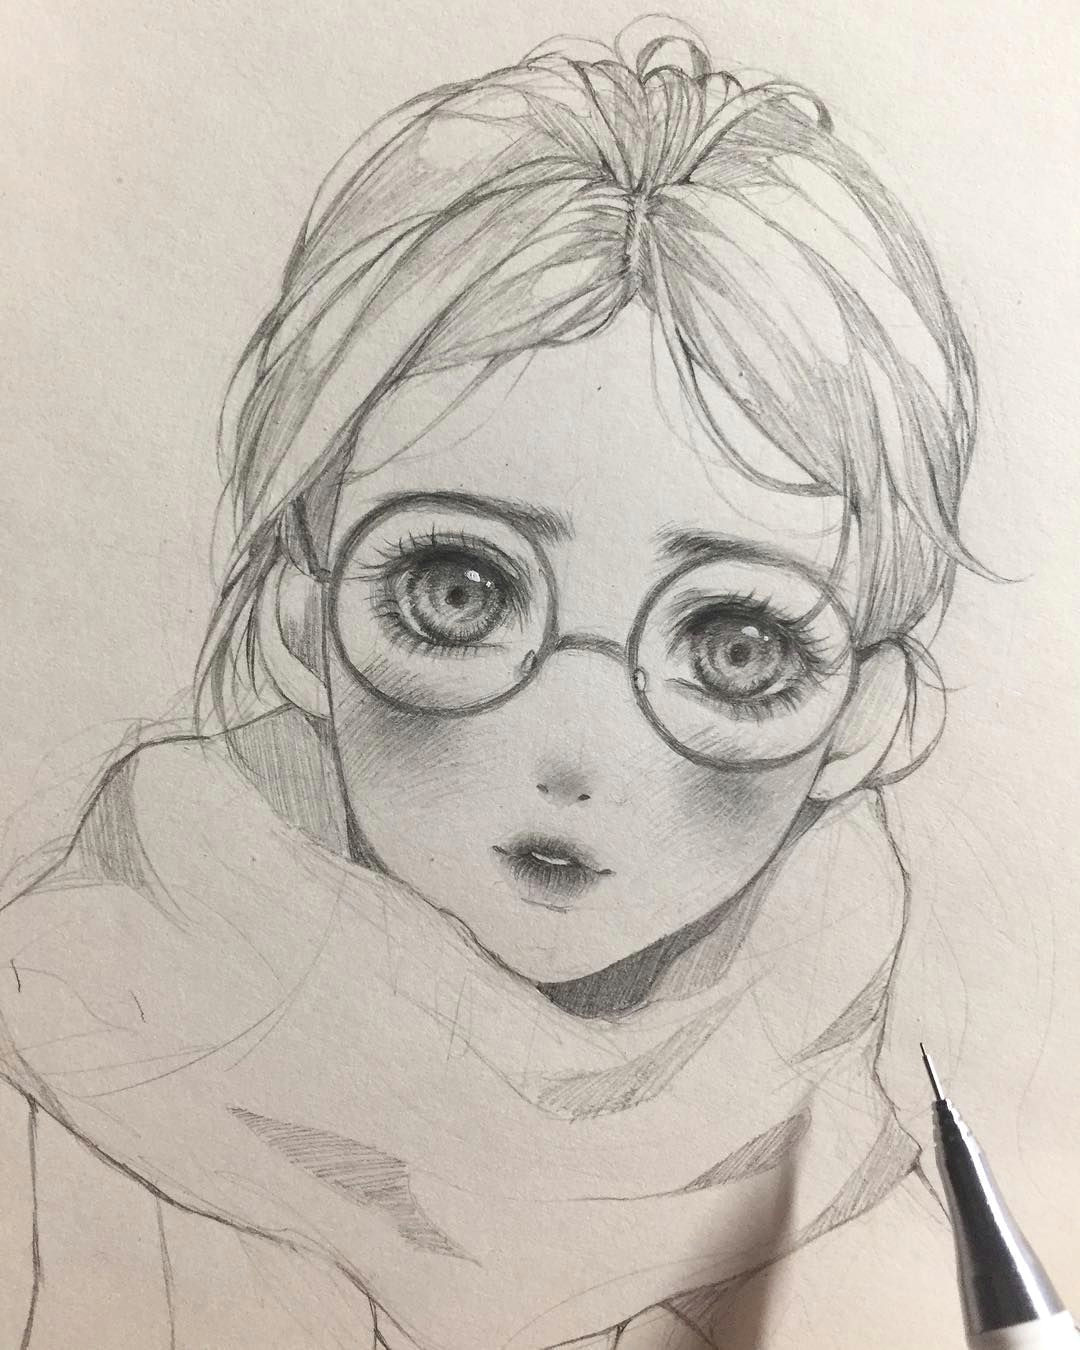 mangadrawing anime manga animeart mangaart pencil art traditionalart animedraw mangadraw animedrawing pencildrawing sketch doodle animegirl